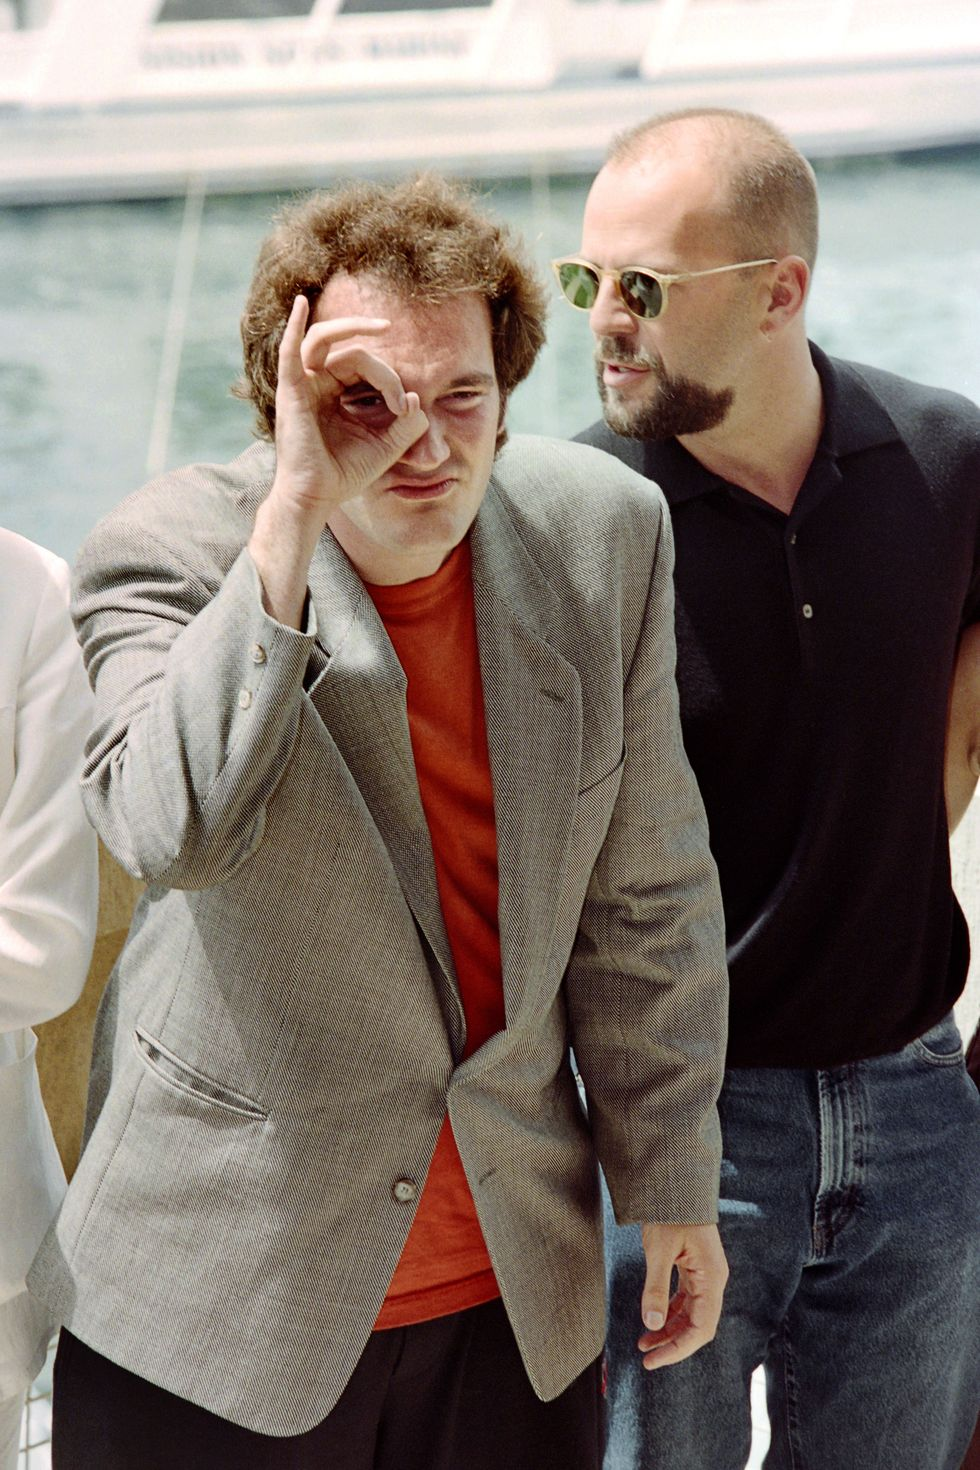 Pulp Fiction (1994) Tarantino and Bruce Willis arrive in Cannes for the premiere of Pulp Fiction. The name of the film refers to pulp magazines and crime novels that were popular during the mid-20th century.